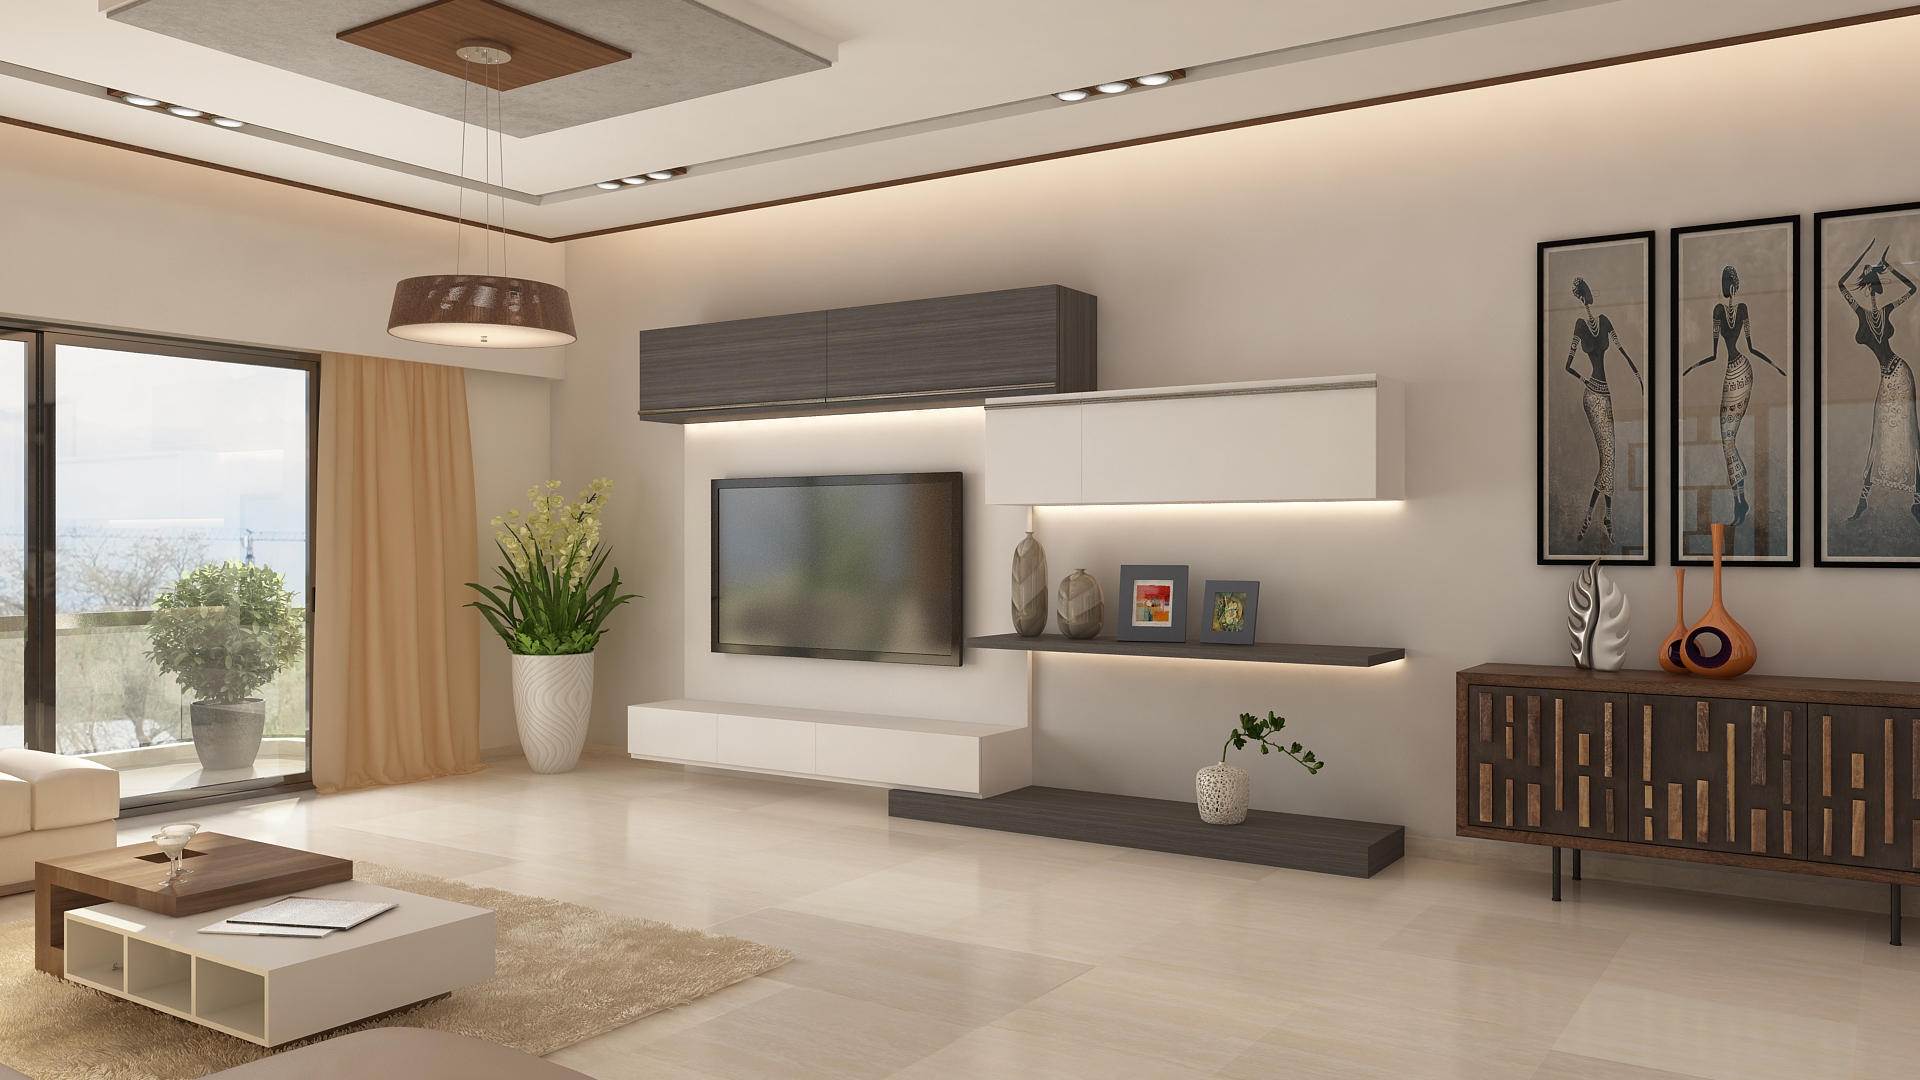 Ghar360 Portfolio - 2 BHK Apartment Interior Design in Jp ...